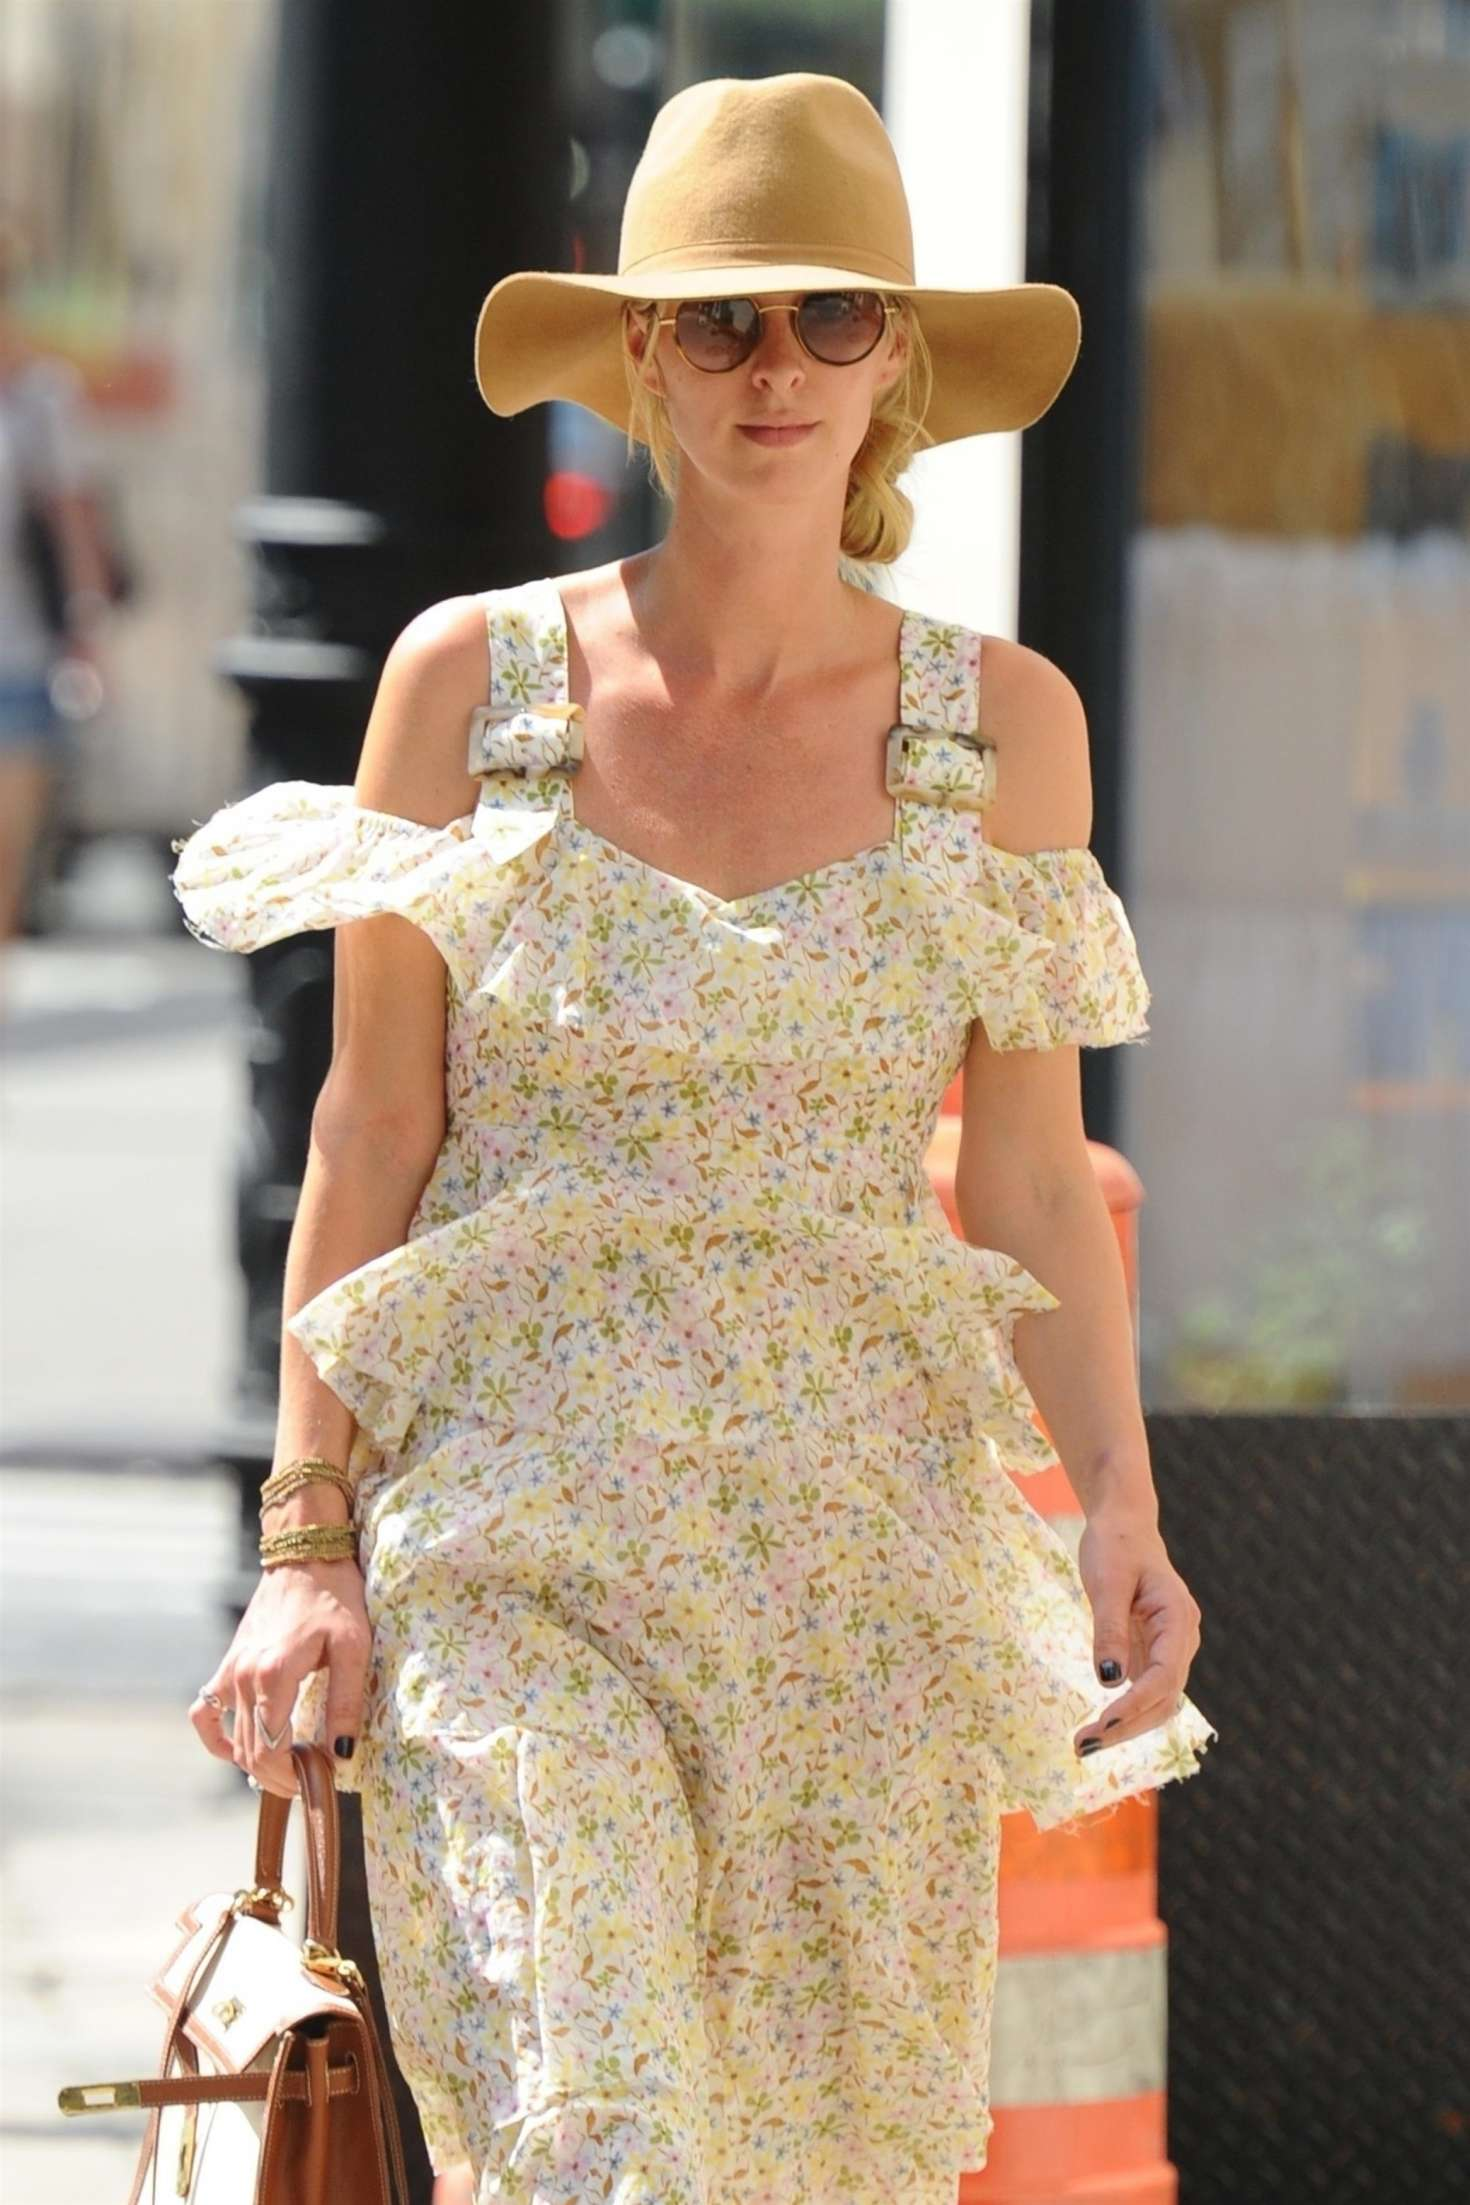 Nicky Hilton in Floral Print Dress - Out in New York City